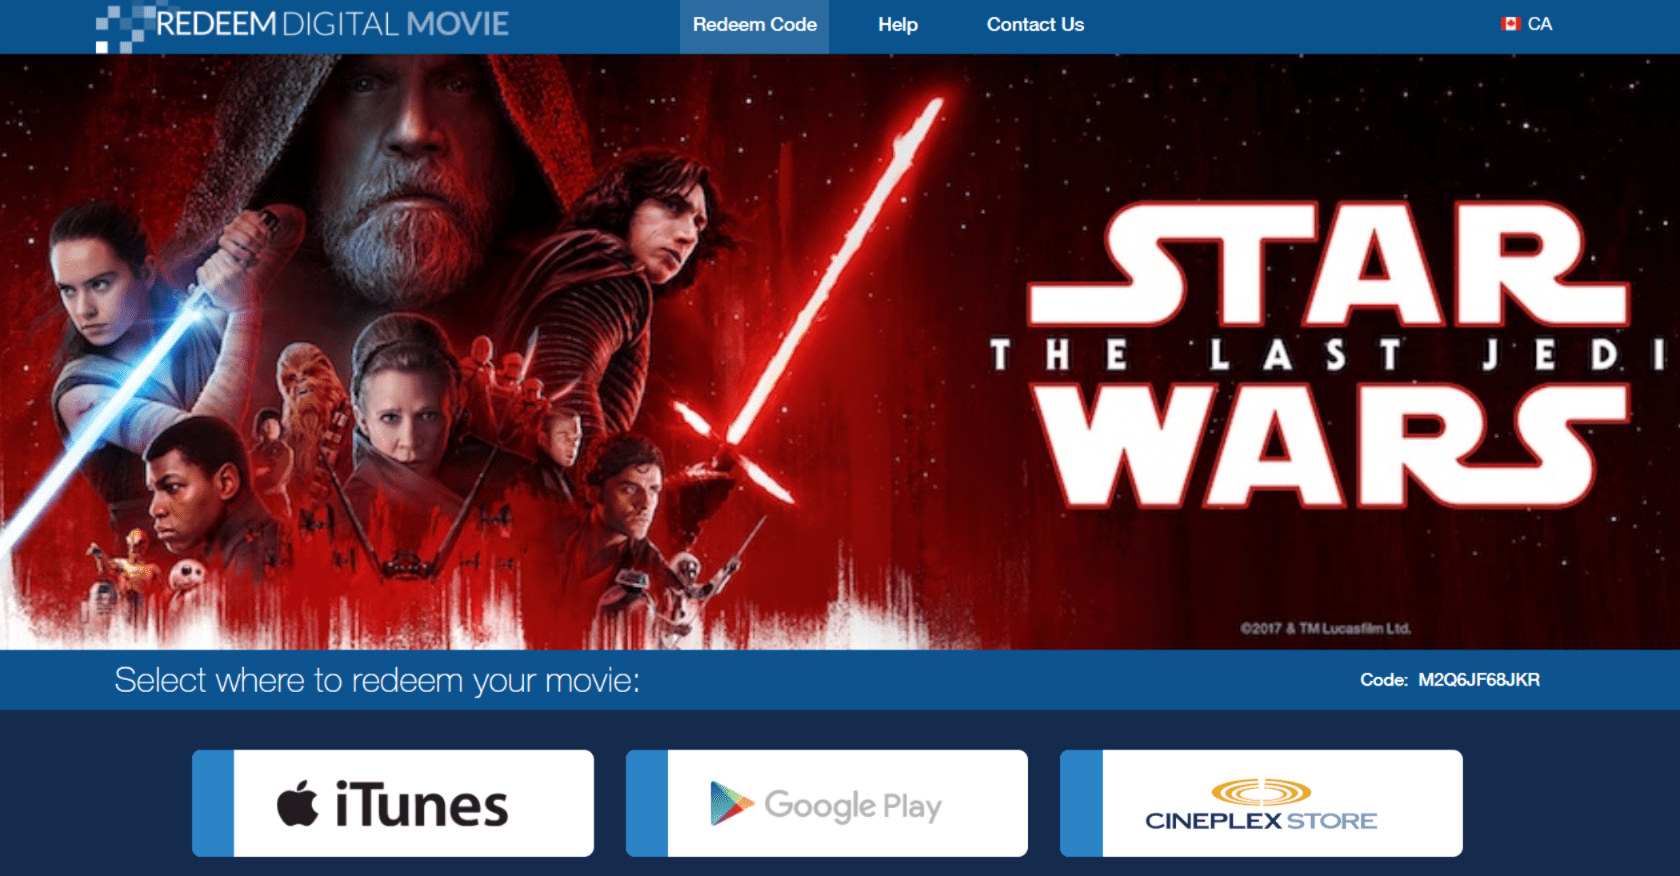 Star Wars Last Jedi Redeem Digital Movie